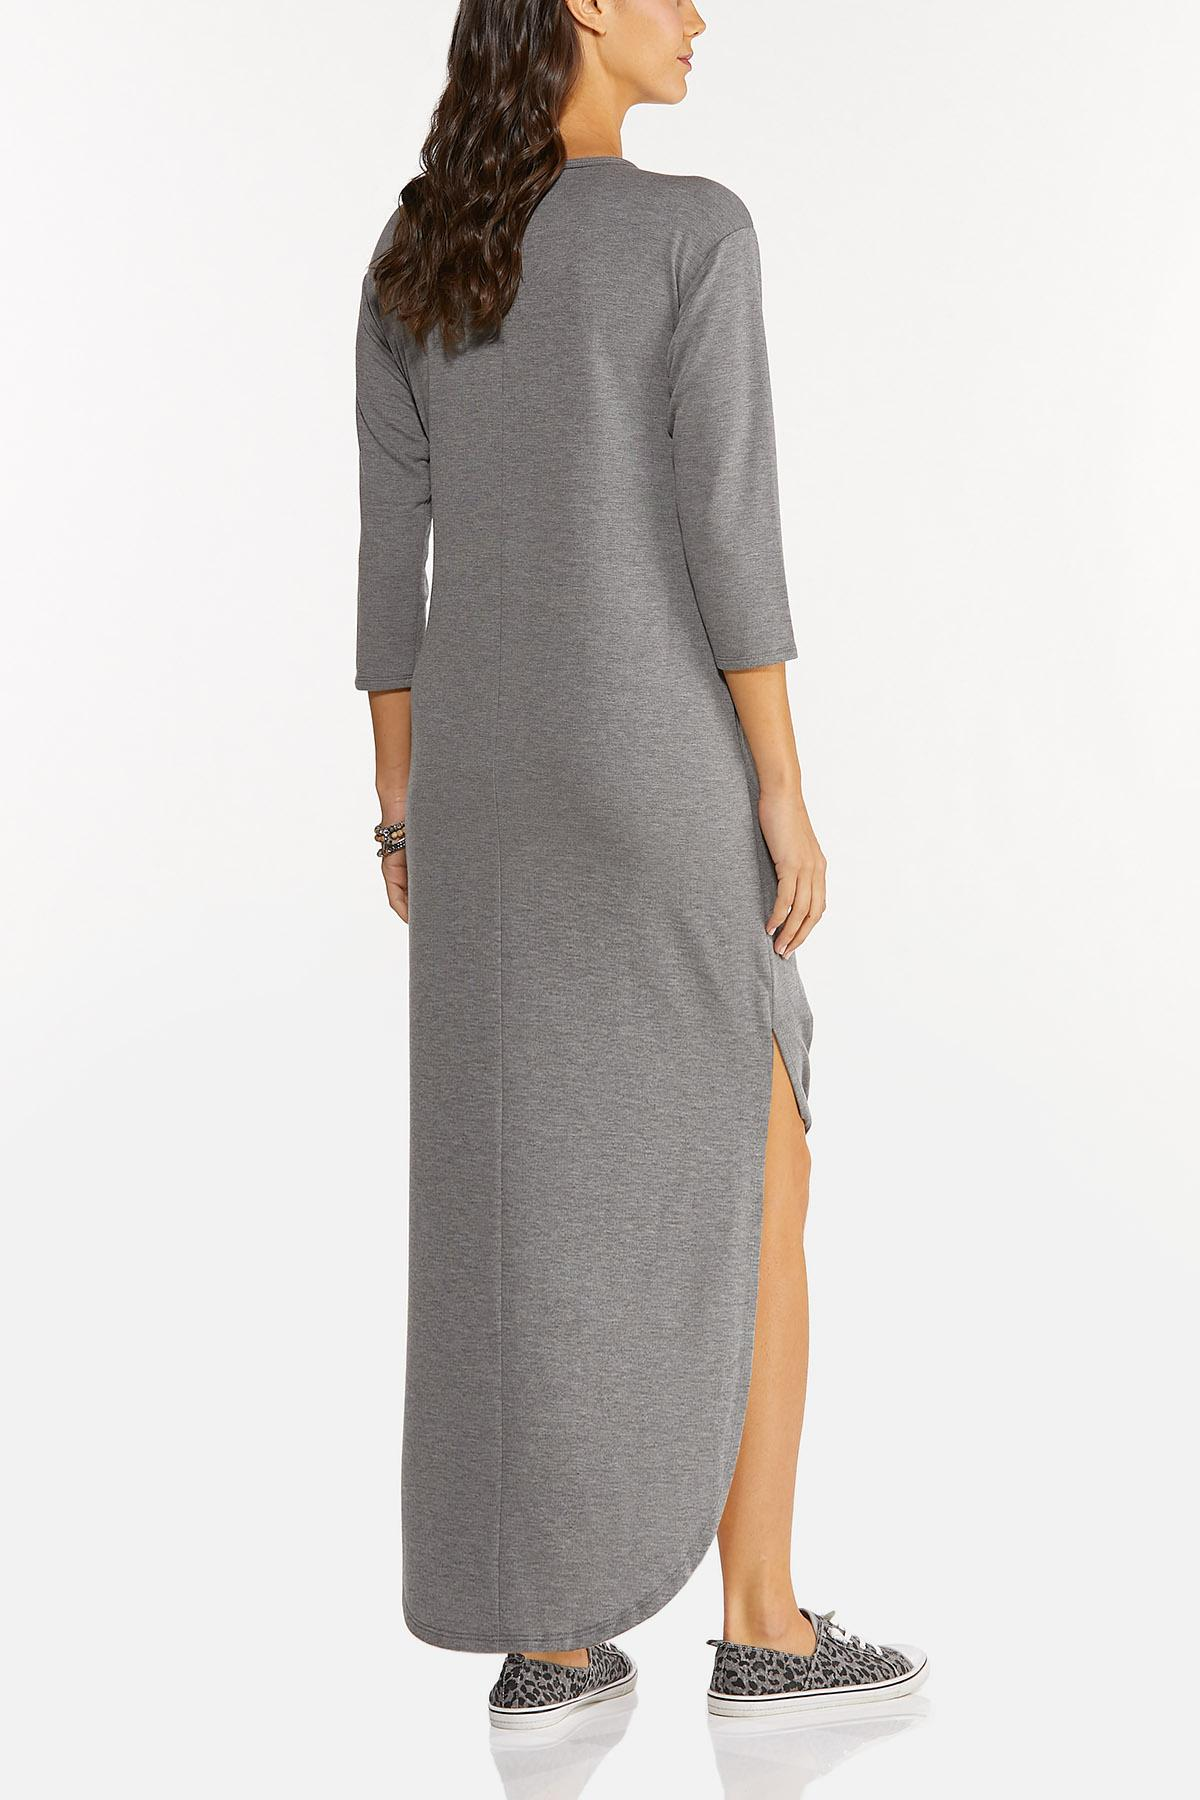 Plus Size Knotted French Terry Maxi Dress (Item #44678030)